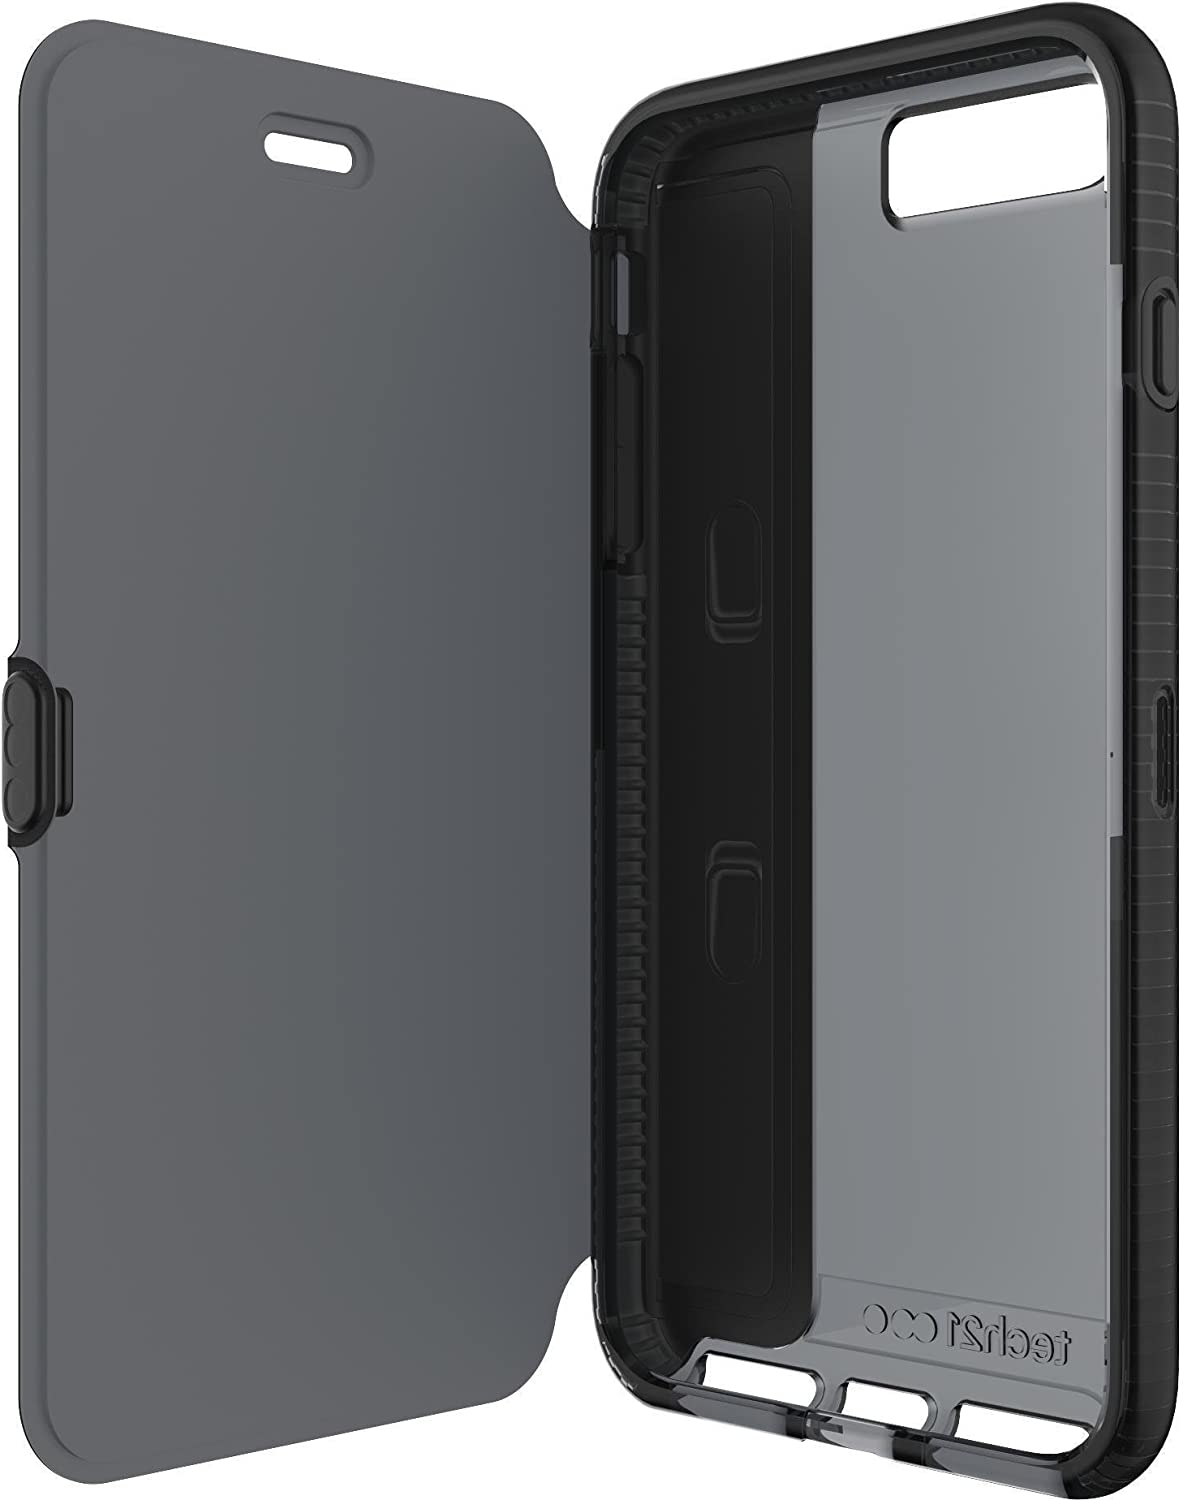 Tech21 Evo Wallet for iPhone 7 Plus- Black